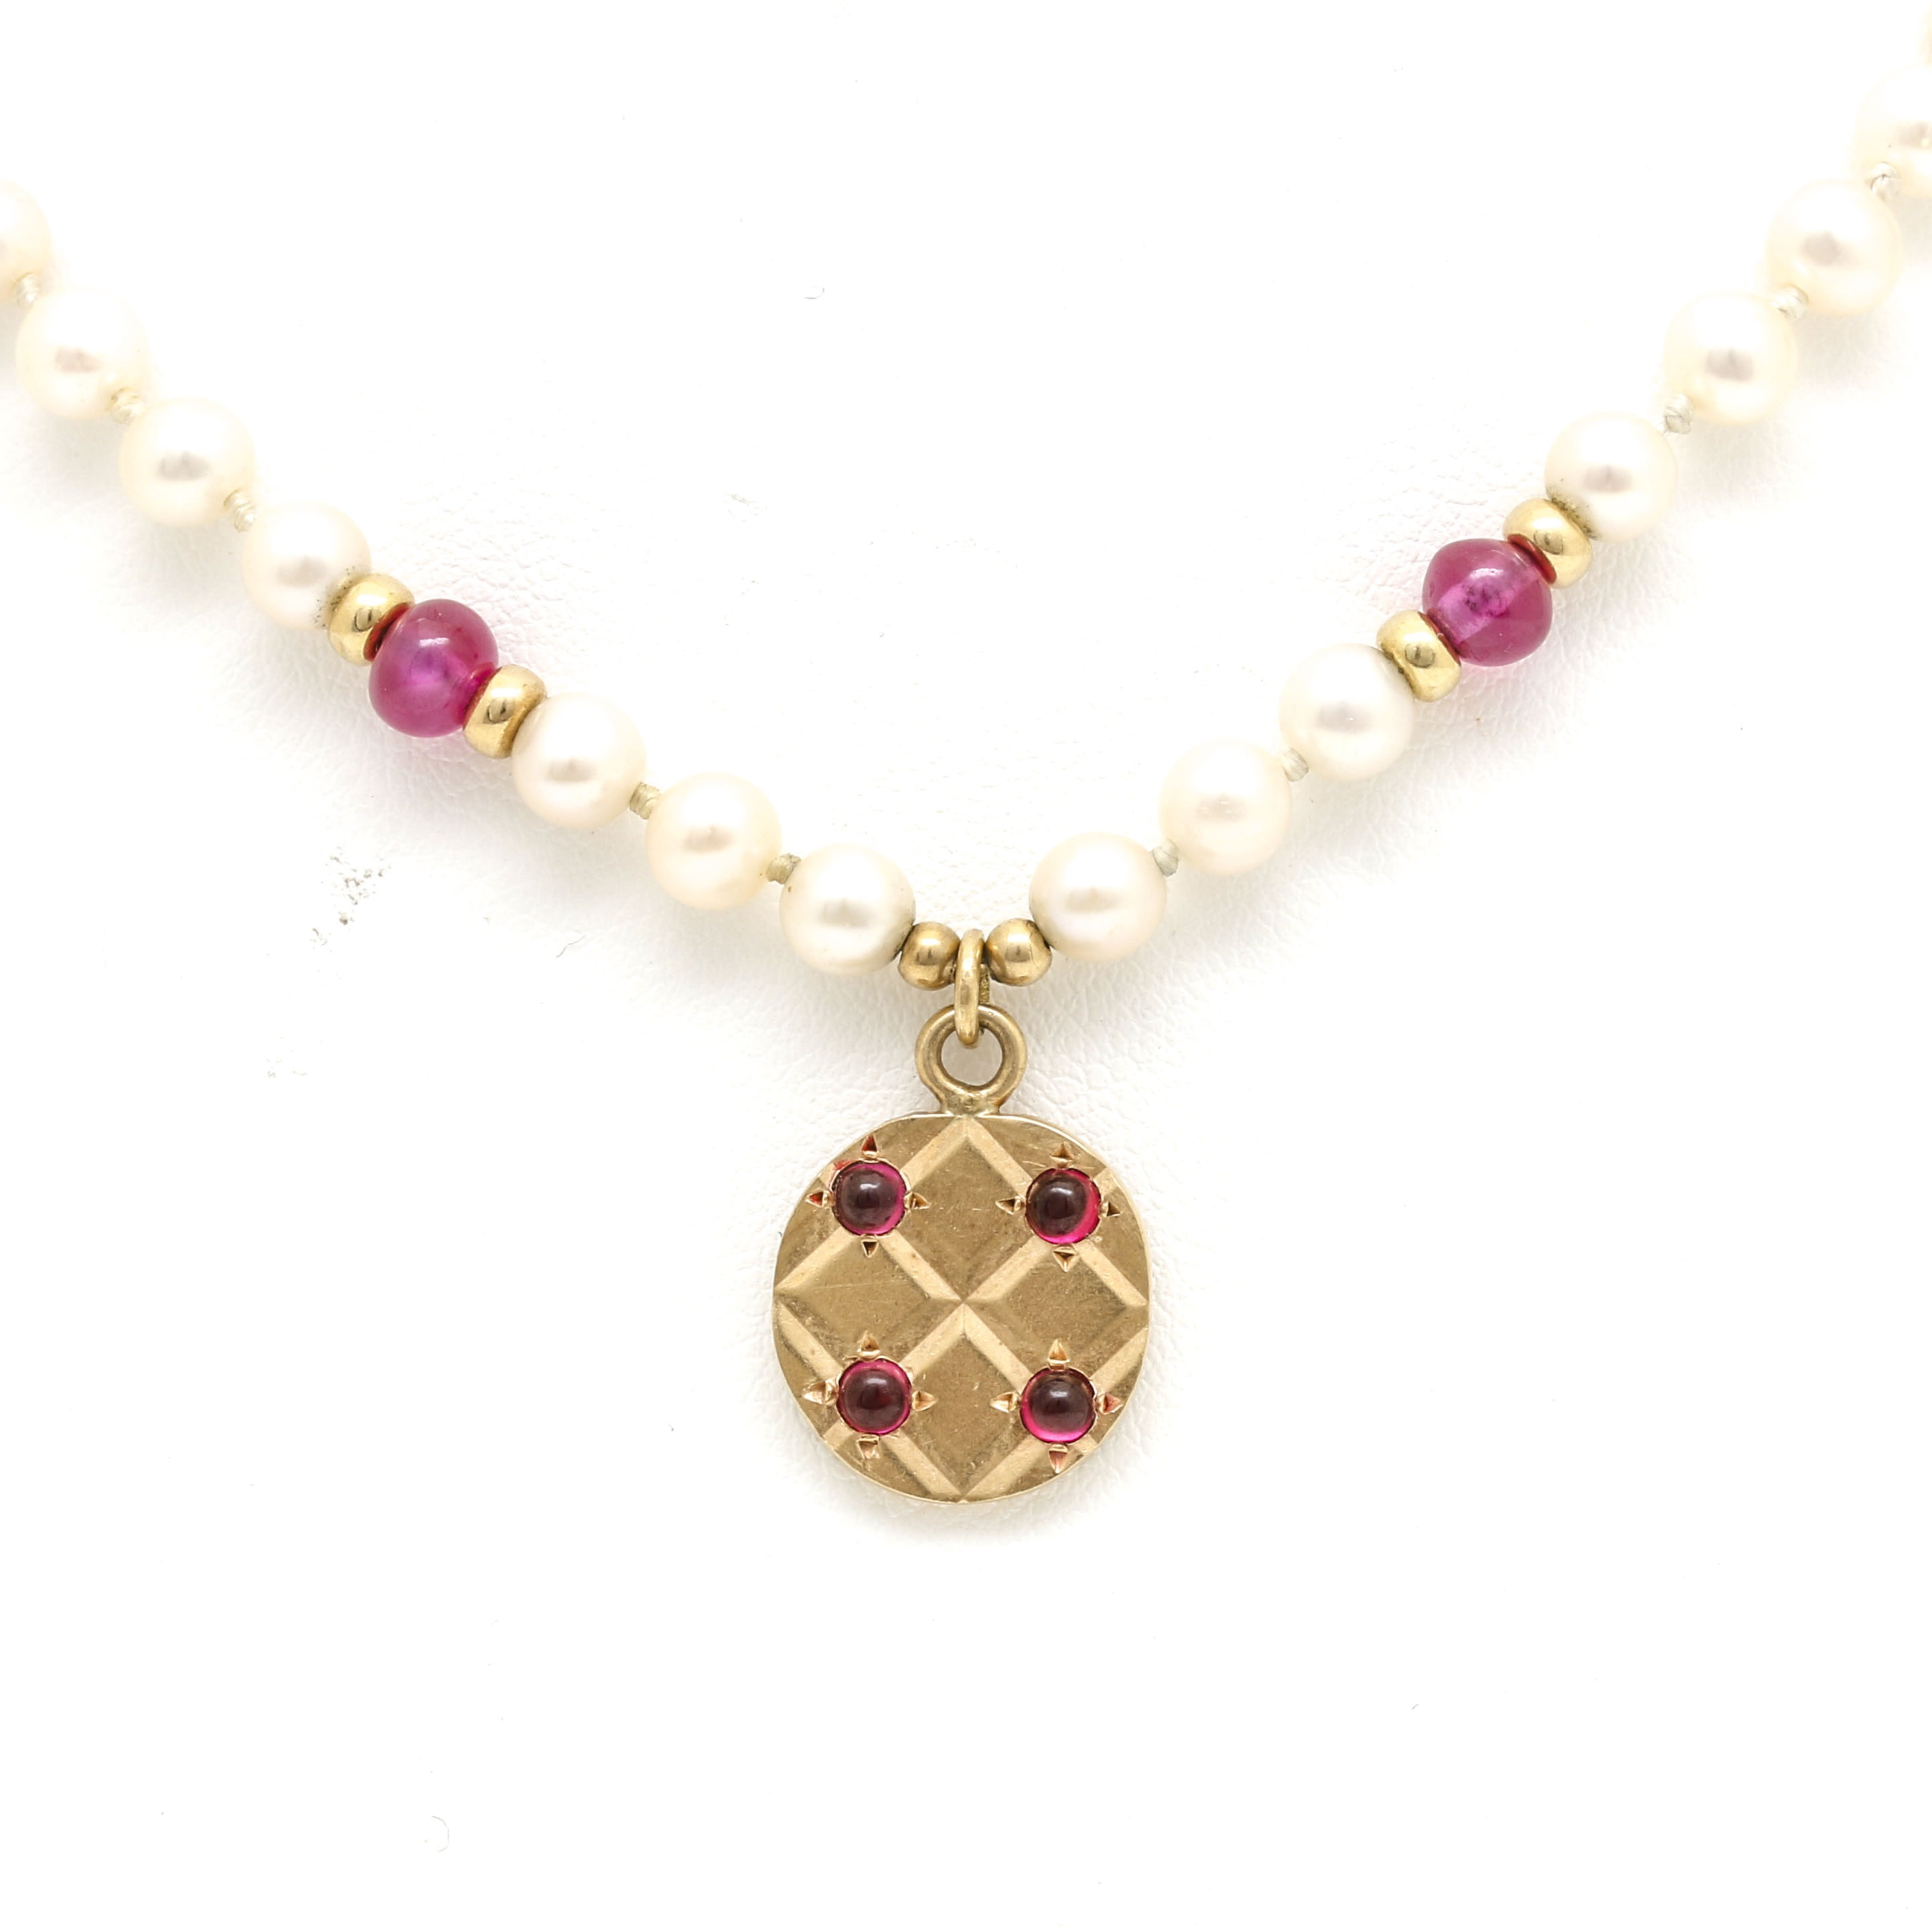 14K Yellow Gold Freshwater Pearl and Ruby Necklace